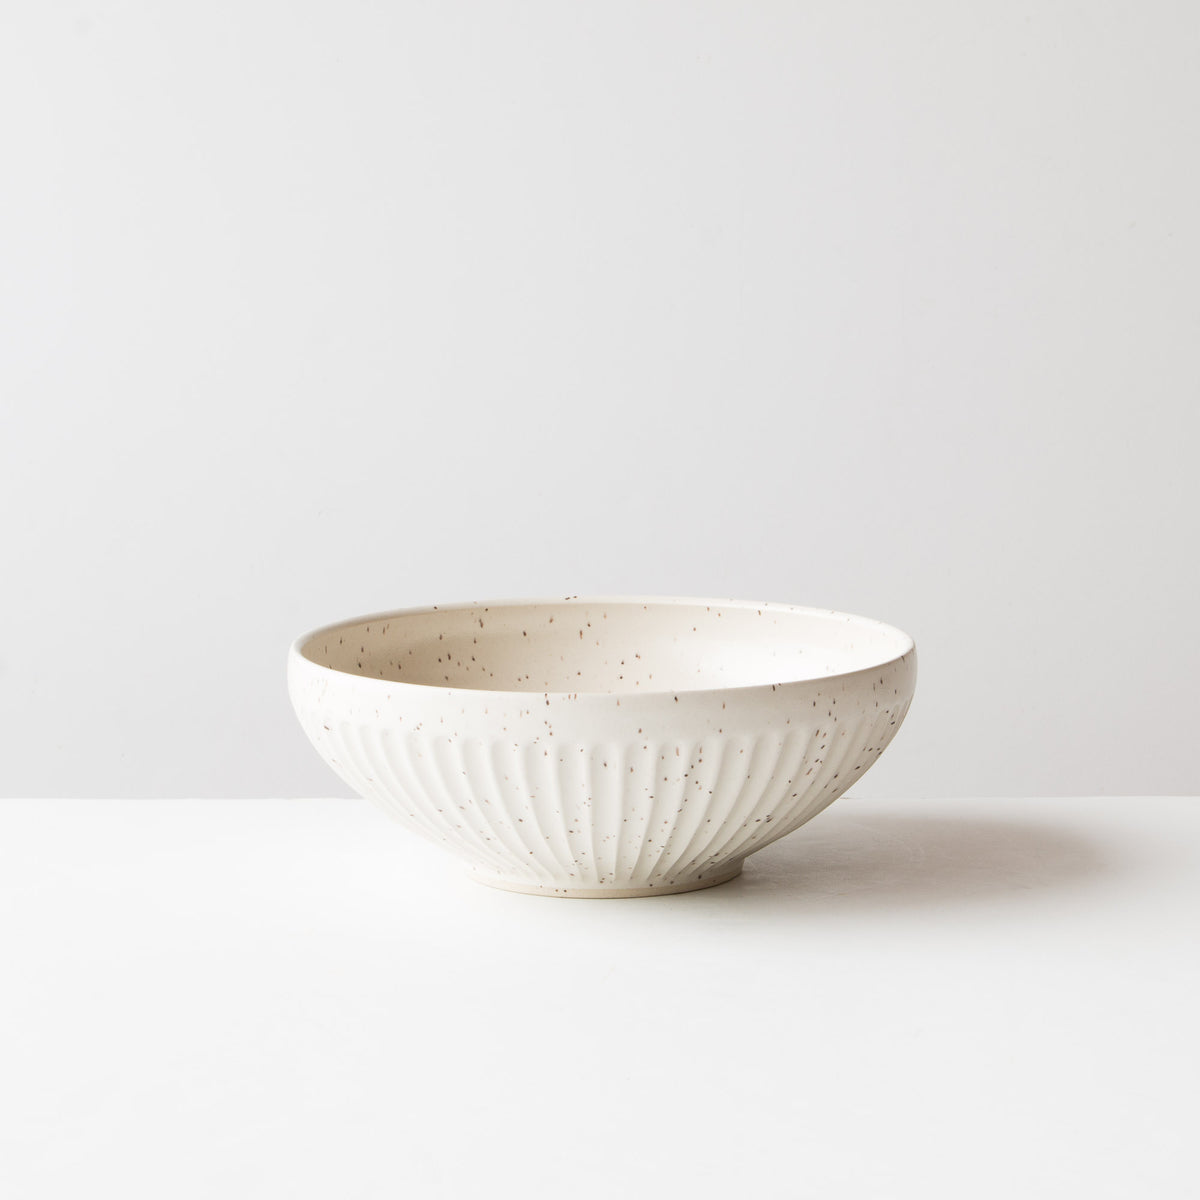 Speckled Off-White - Large Hand Thrown Ceramic Bowl - Groove Pattern - Christian Roy - Chic & Basta